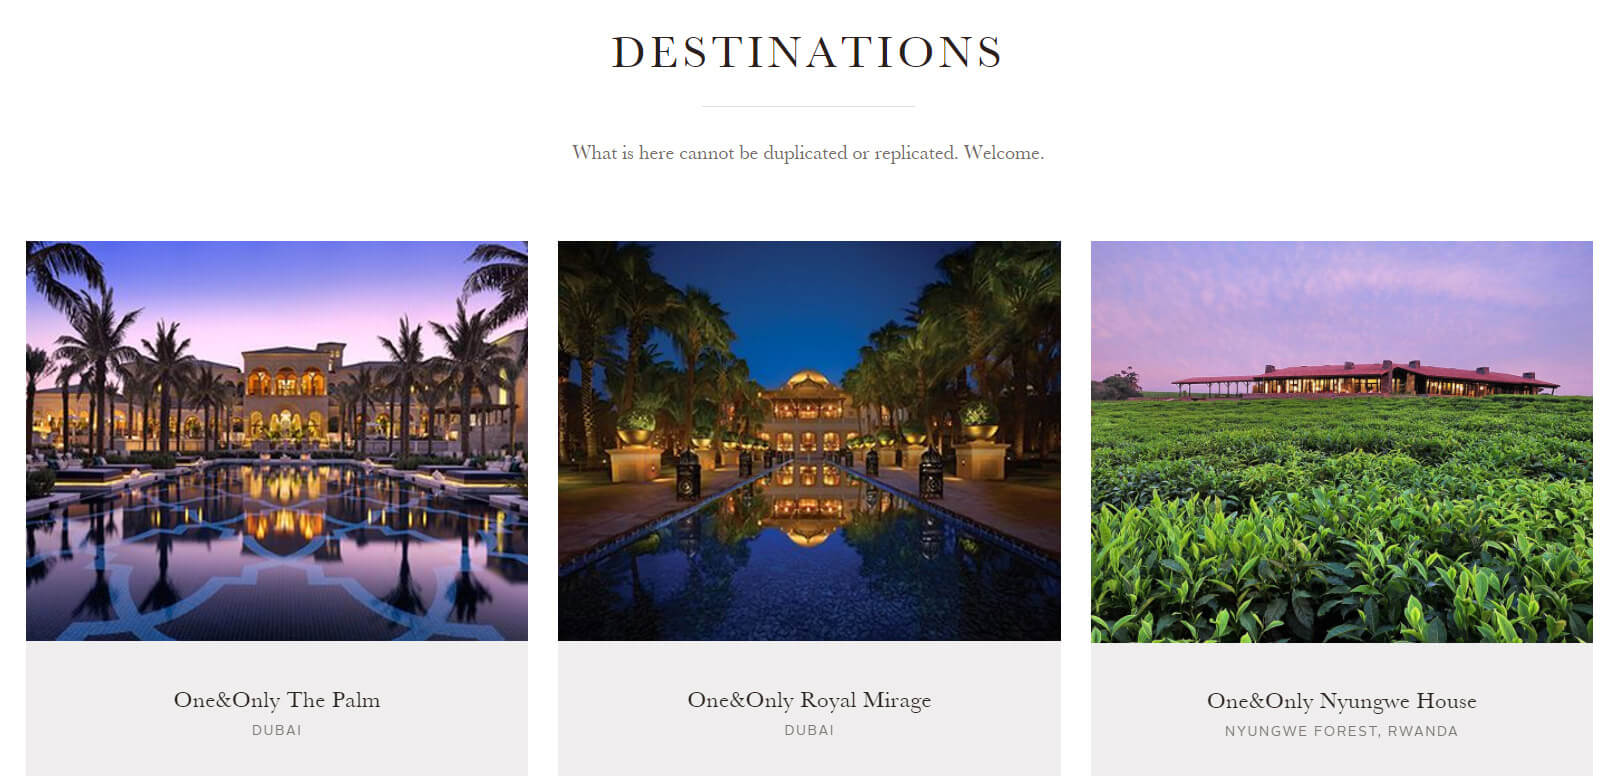 One&Only Resorts Destination design